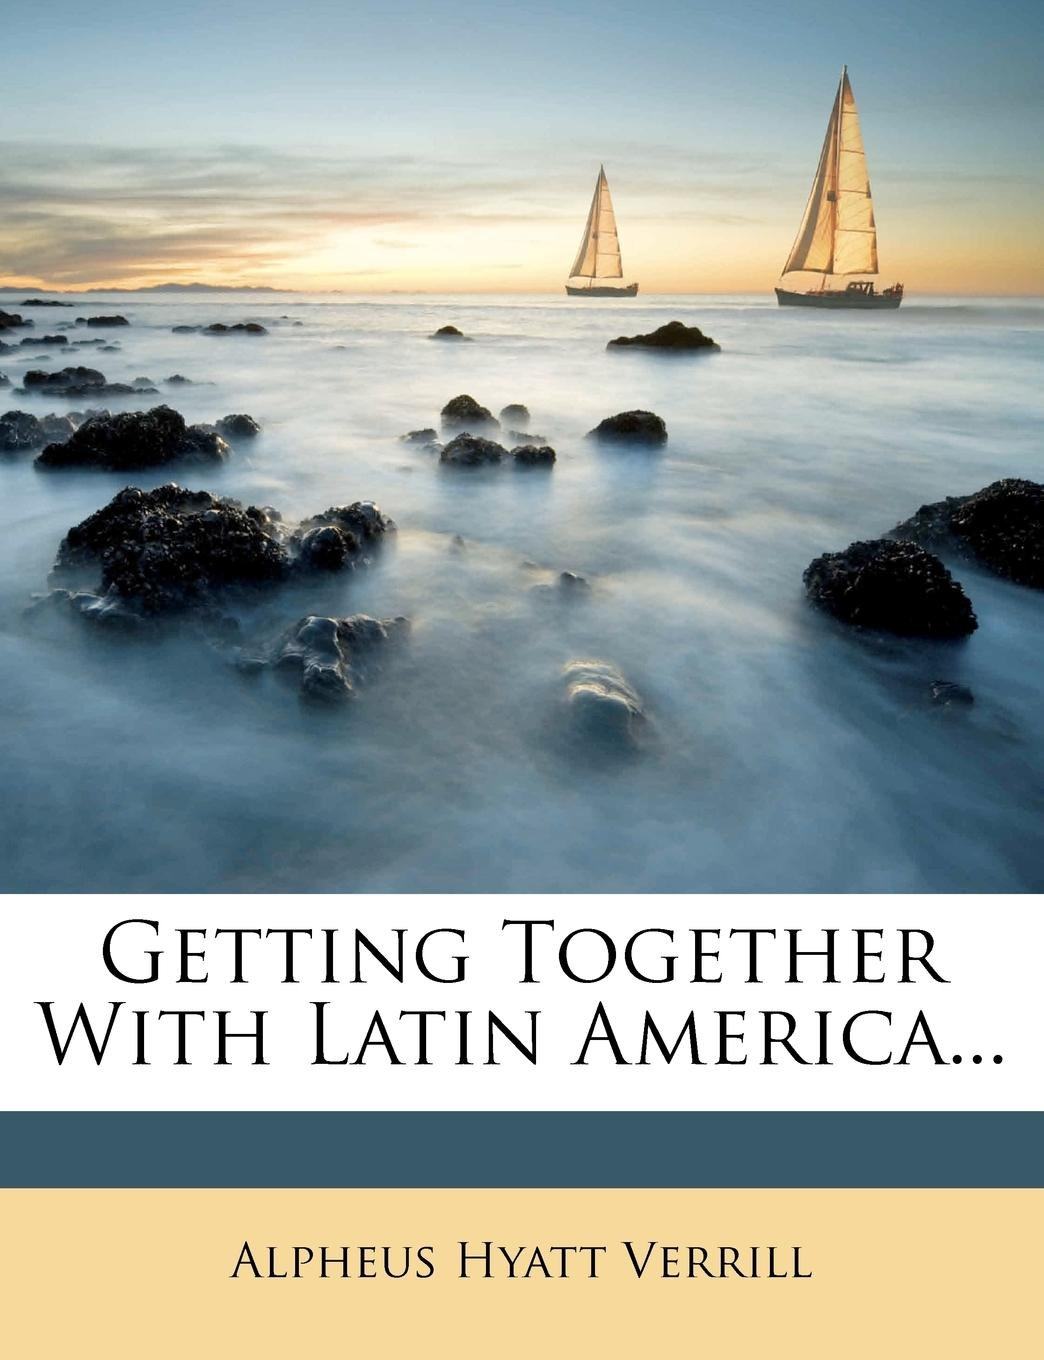 Getting Together With Latin America... pdf